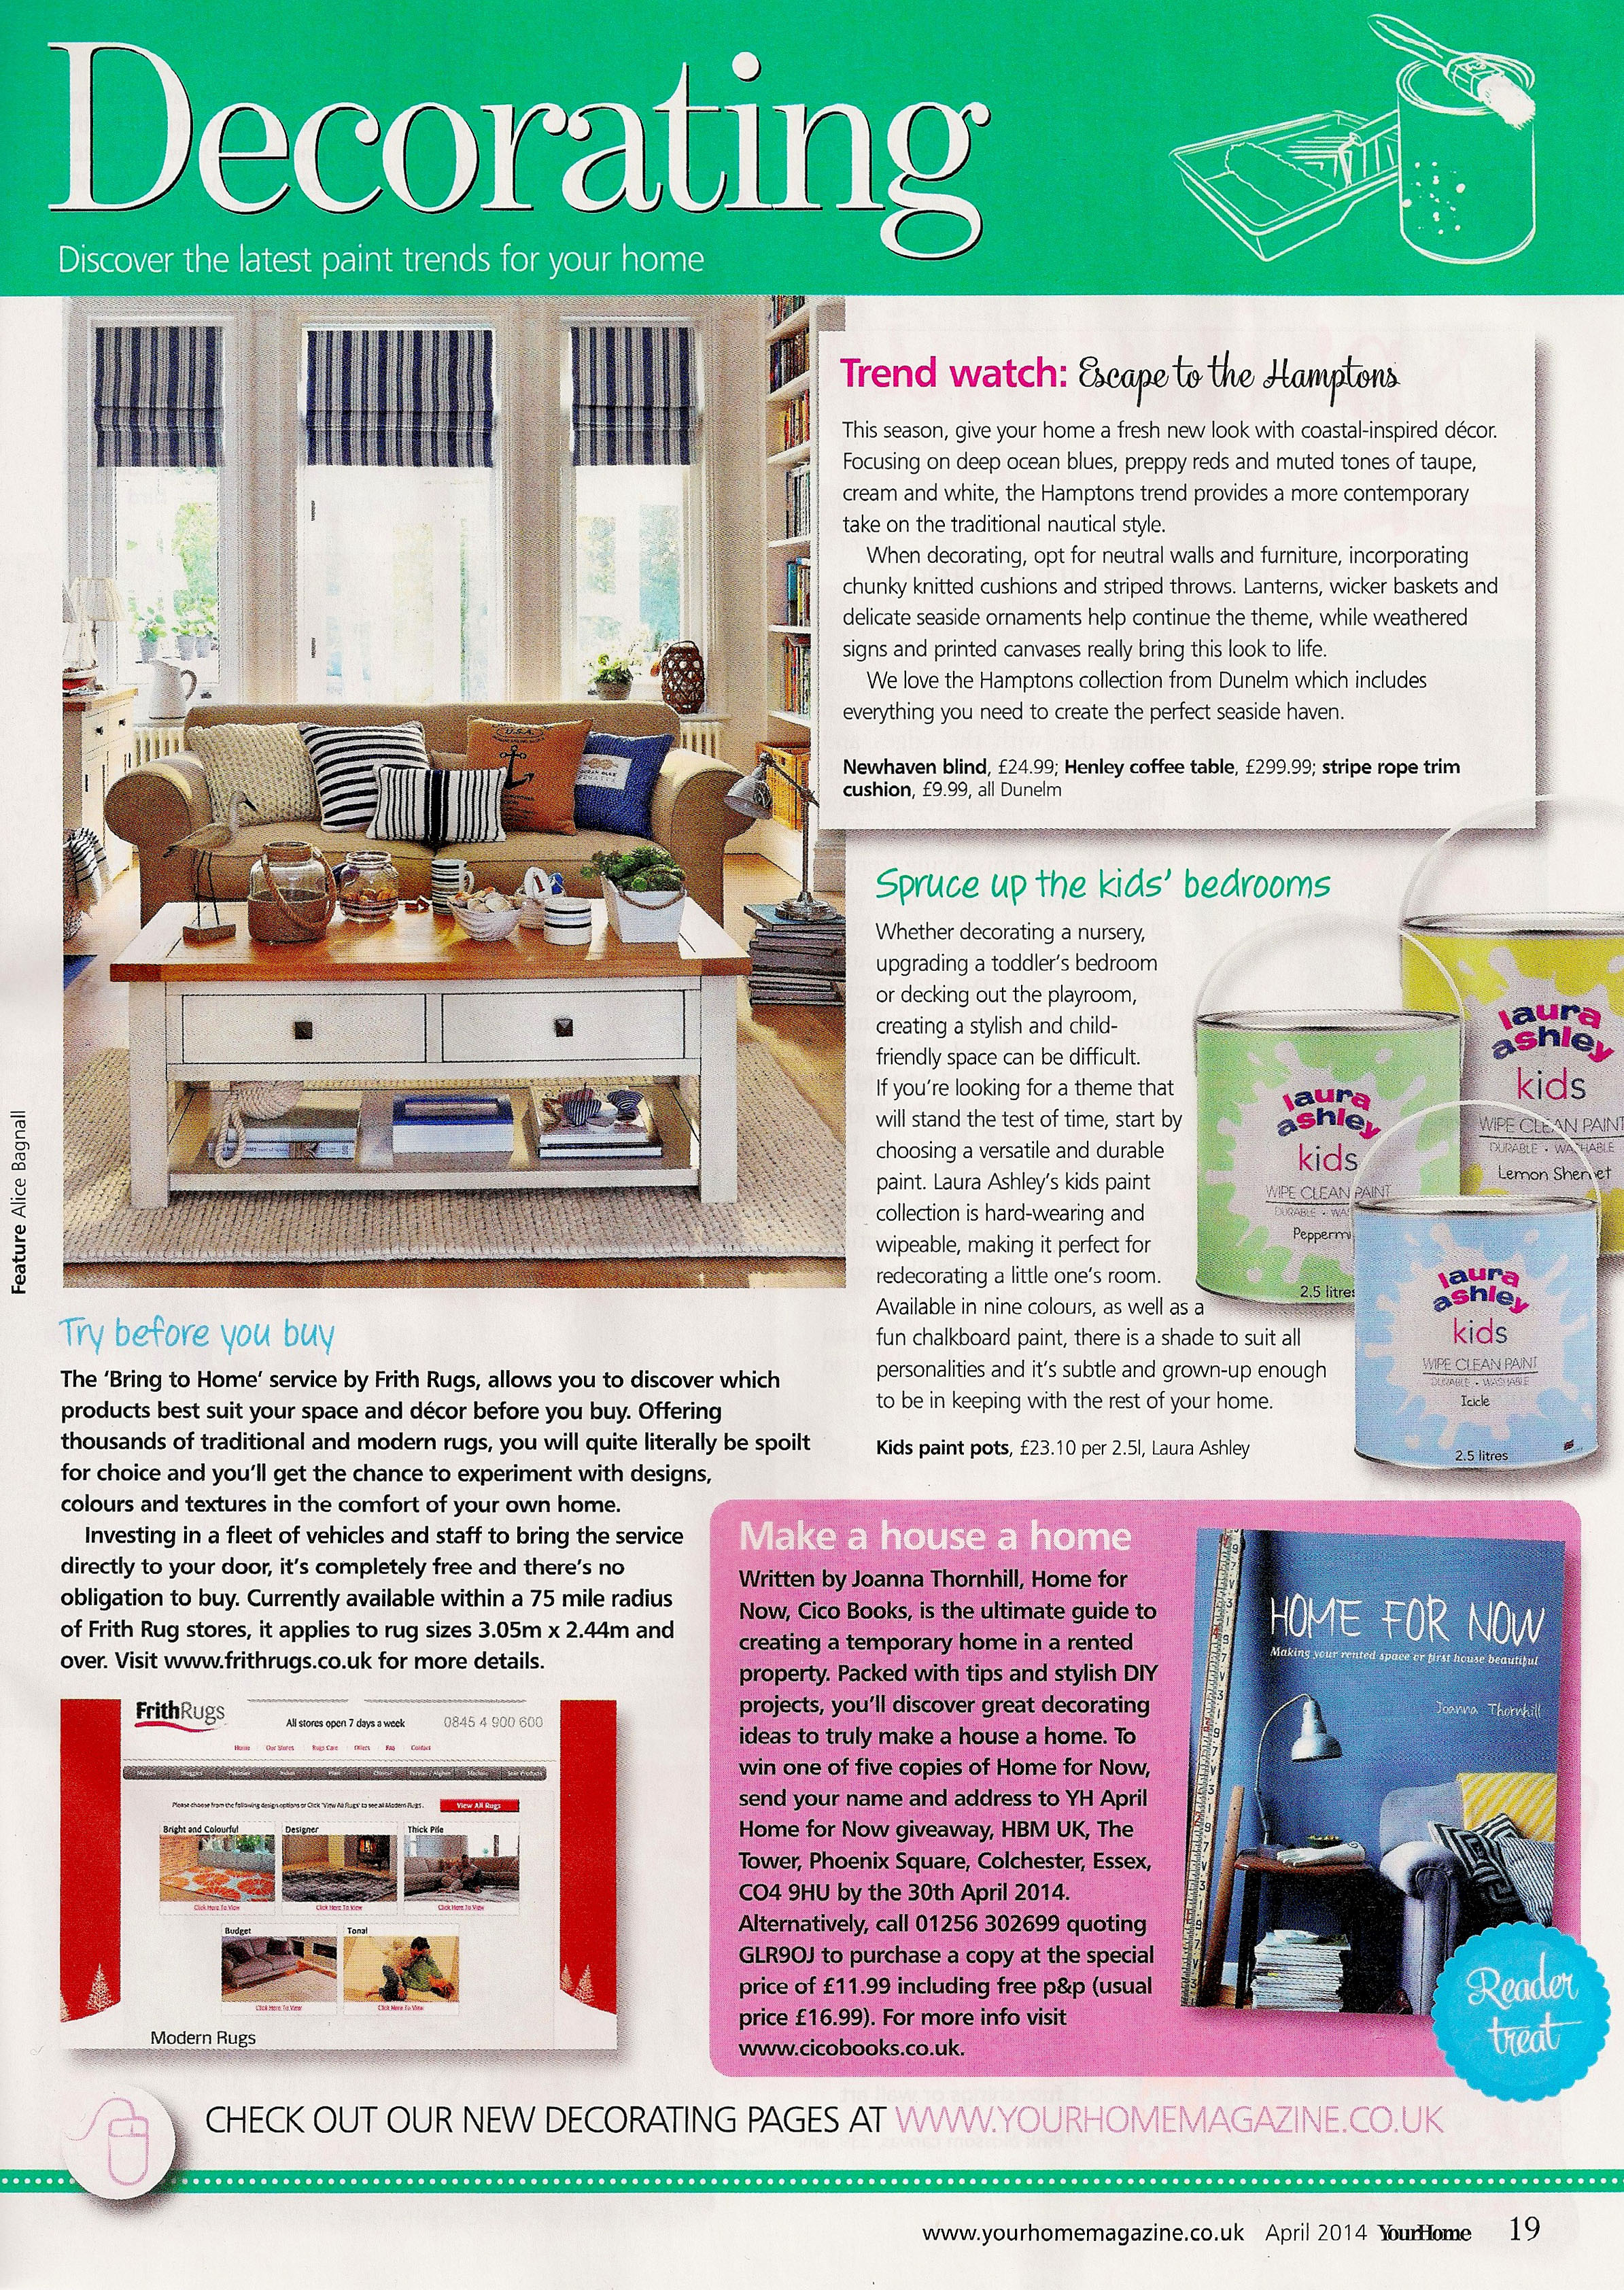 Your Home Review Full Page April 2014.jpeg